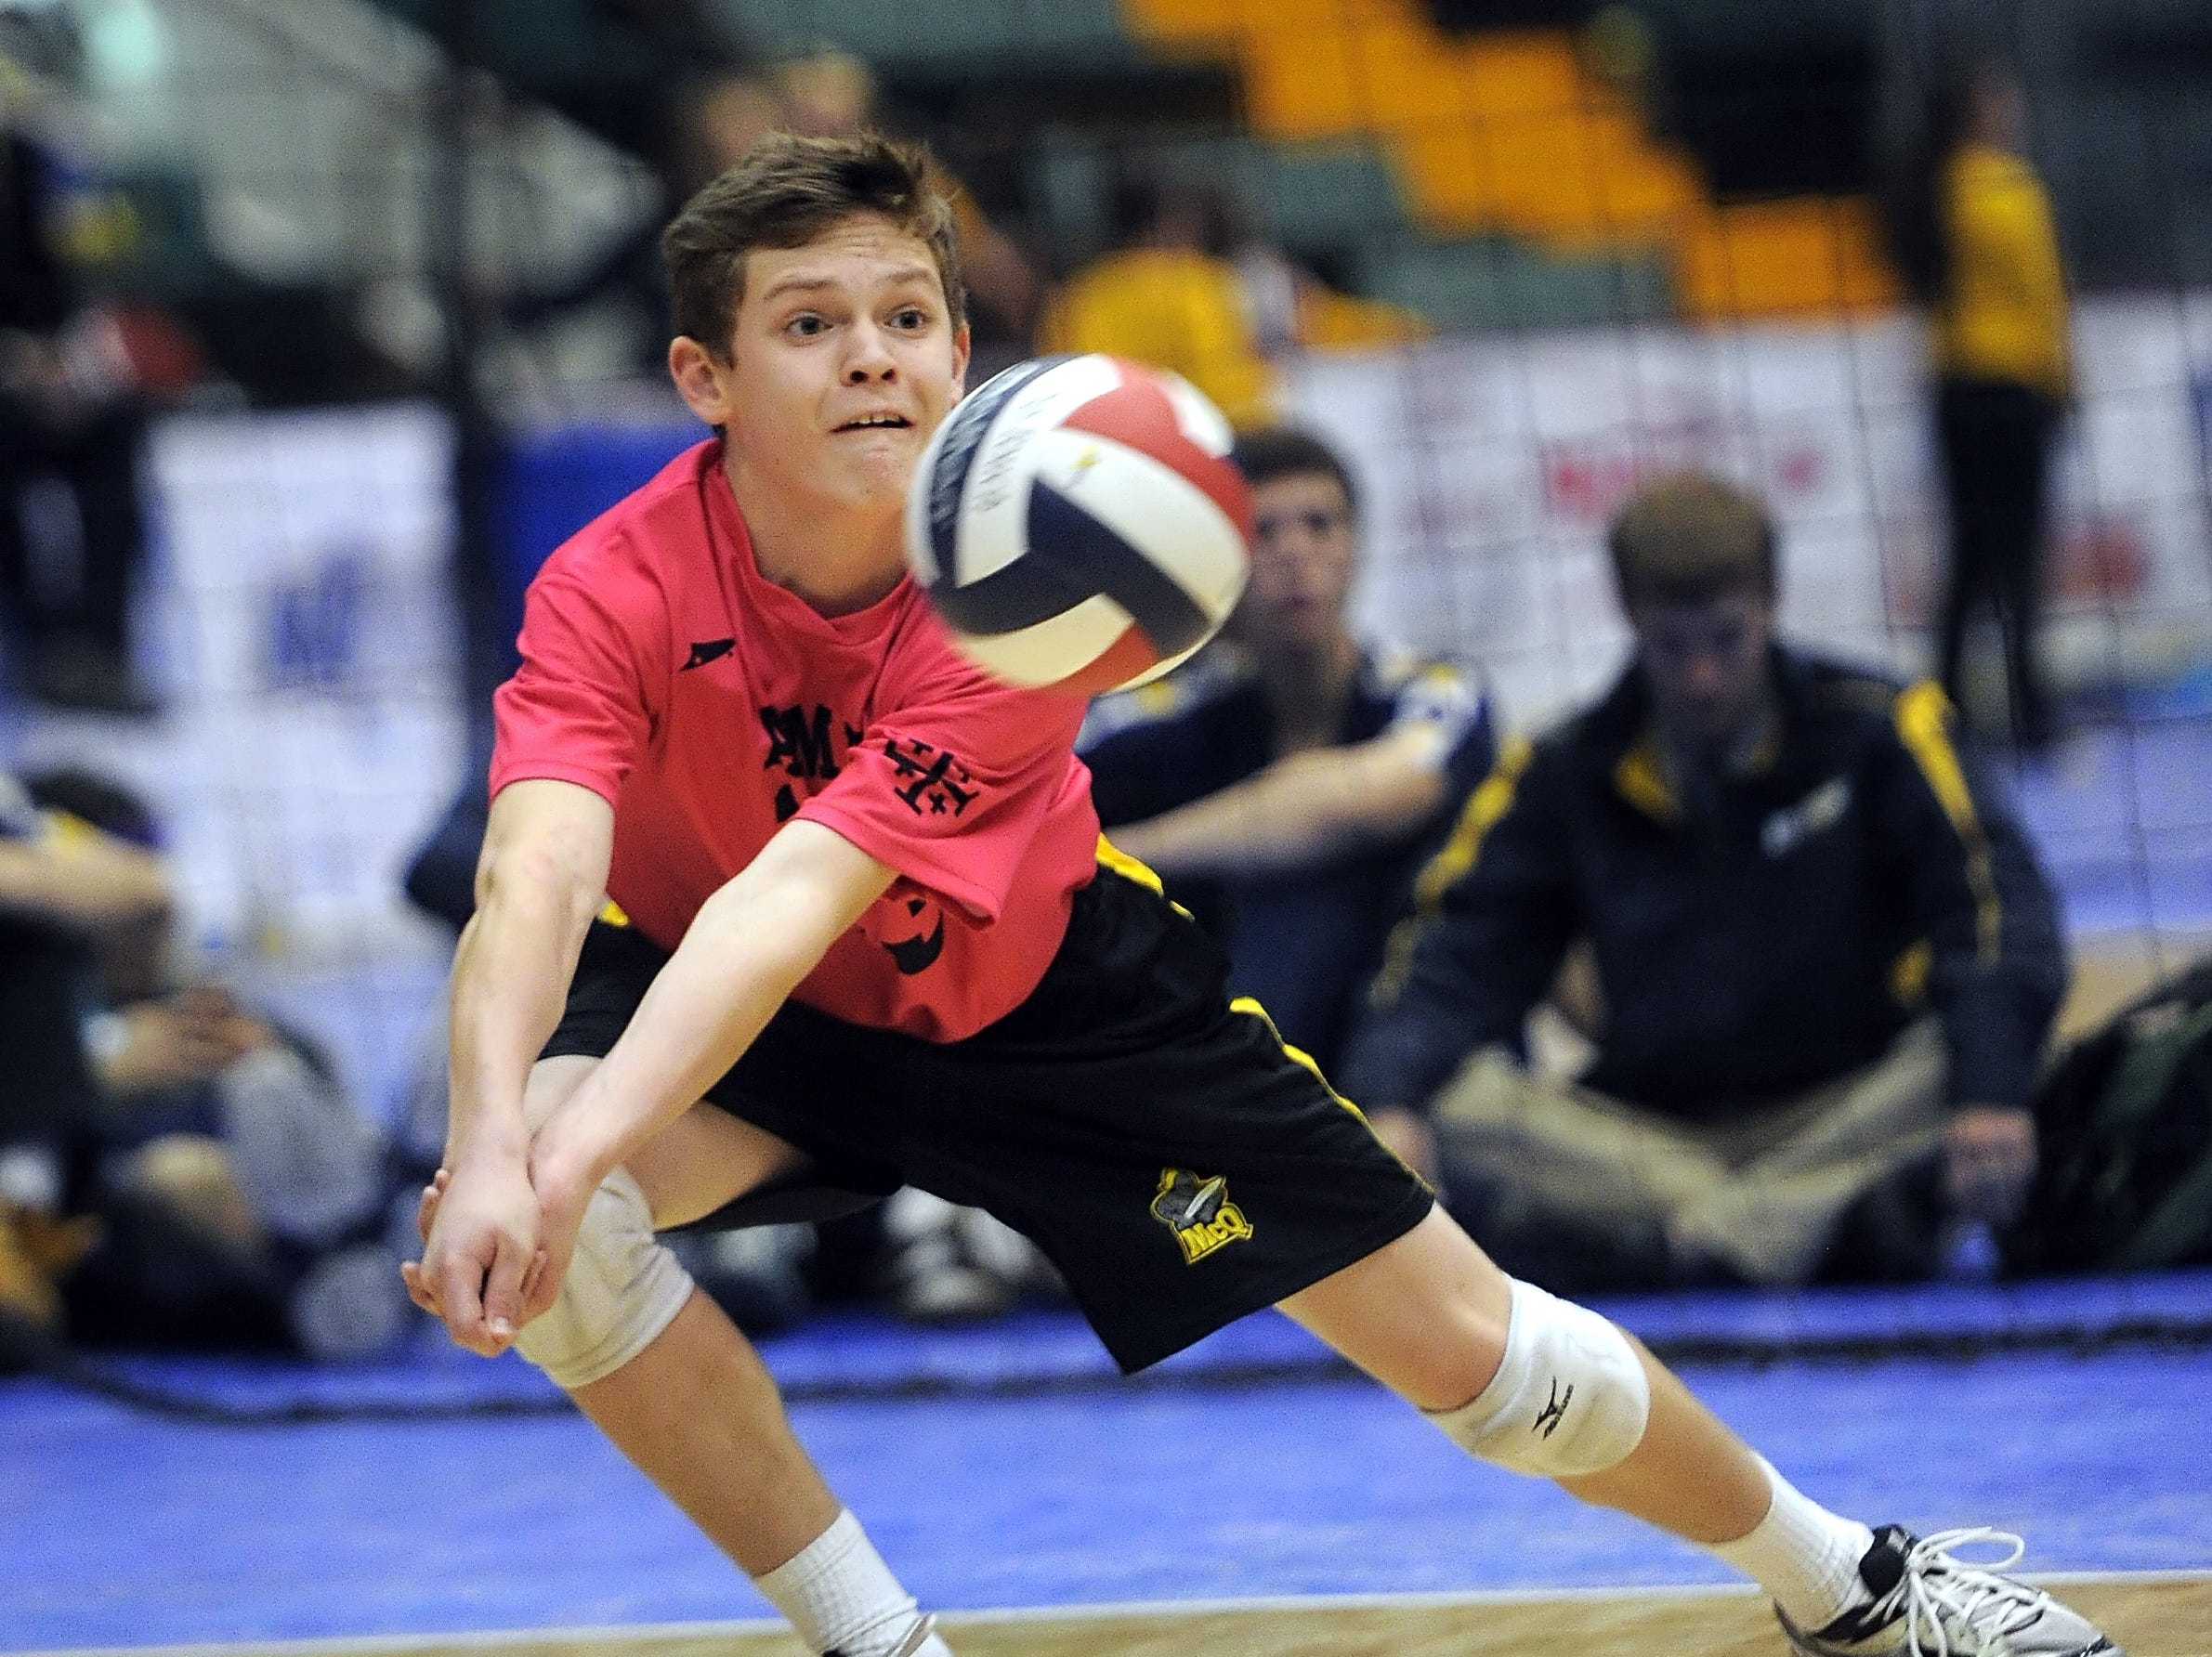 McQuaid's Spencer Wickens stretches to dig a driven ball during the Division 1 final at the NYSPHSAA Boy's Volleyball Championships held at the Glens Falls Civic Center on Friday, November 11, 2014.  McQuaid lost the final to Sachem North-XI in four games (22-25, 22-25, 25-21, 18-25).